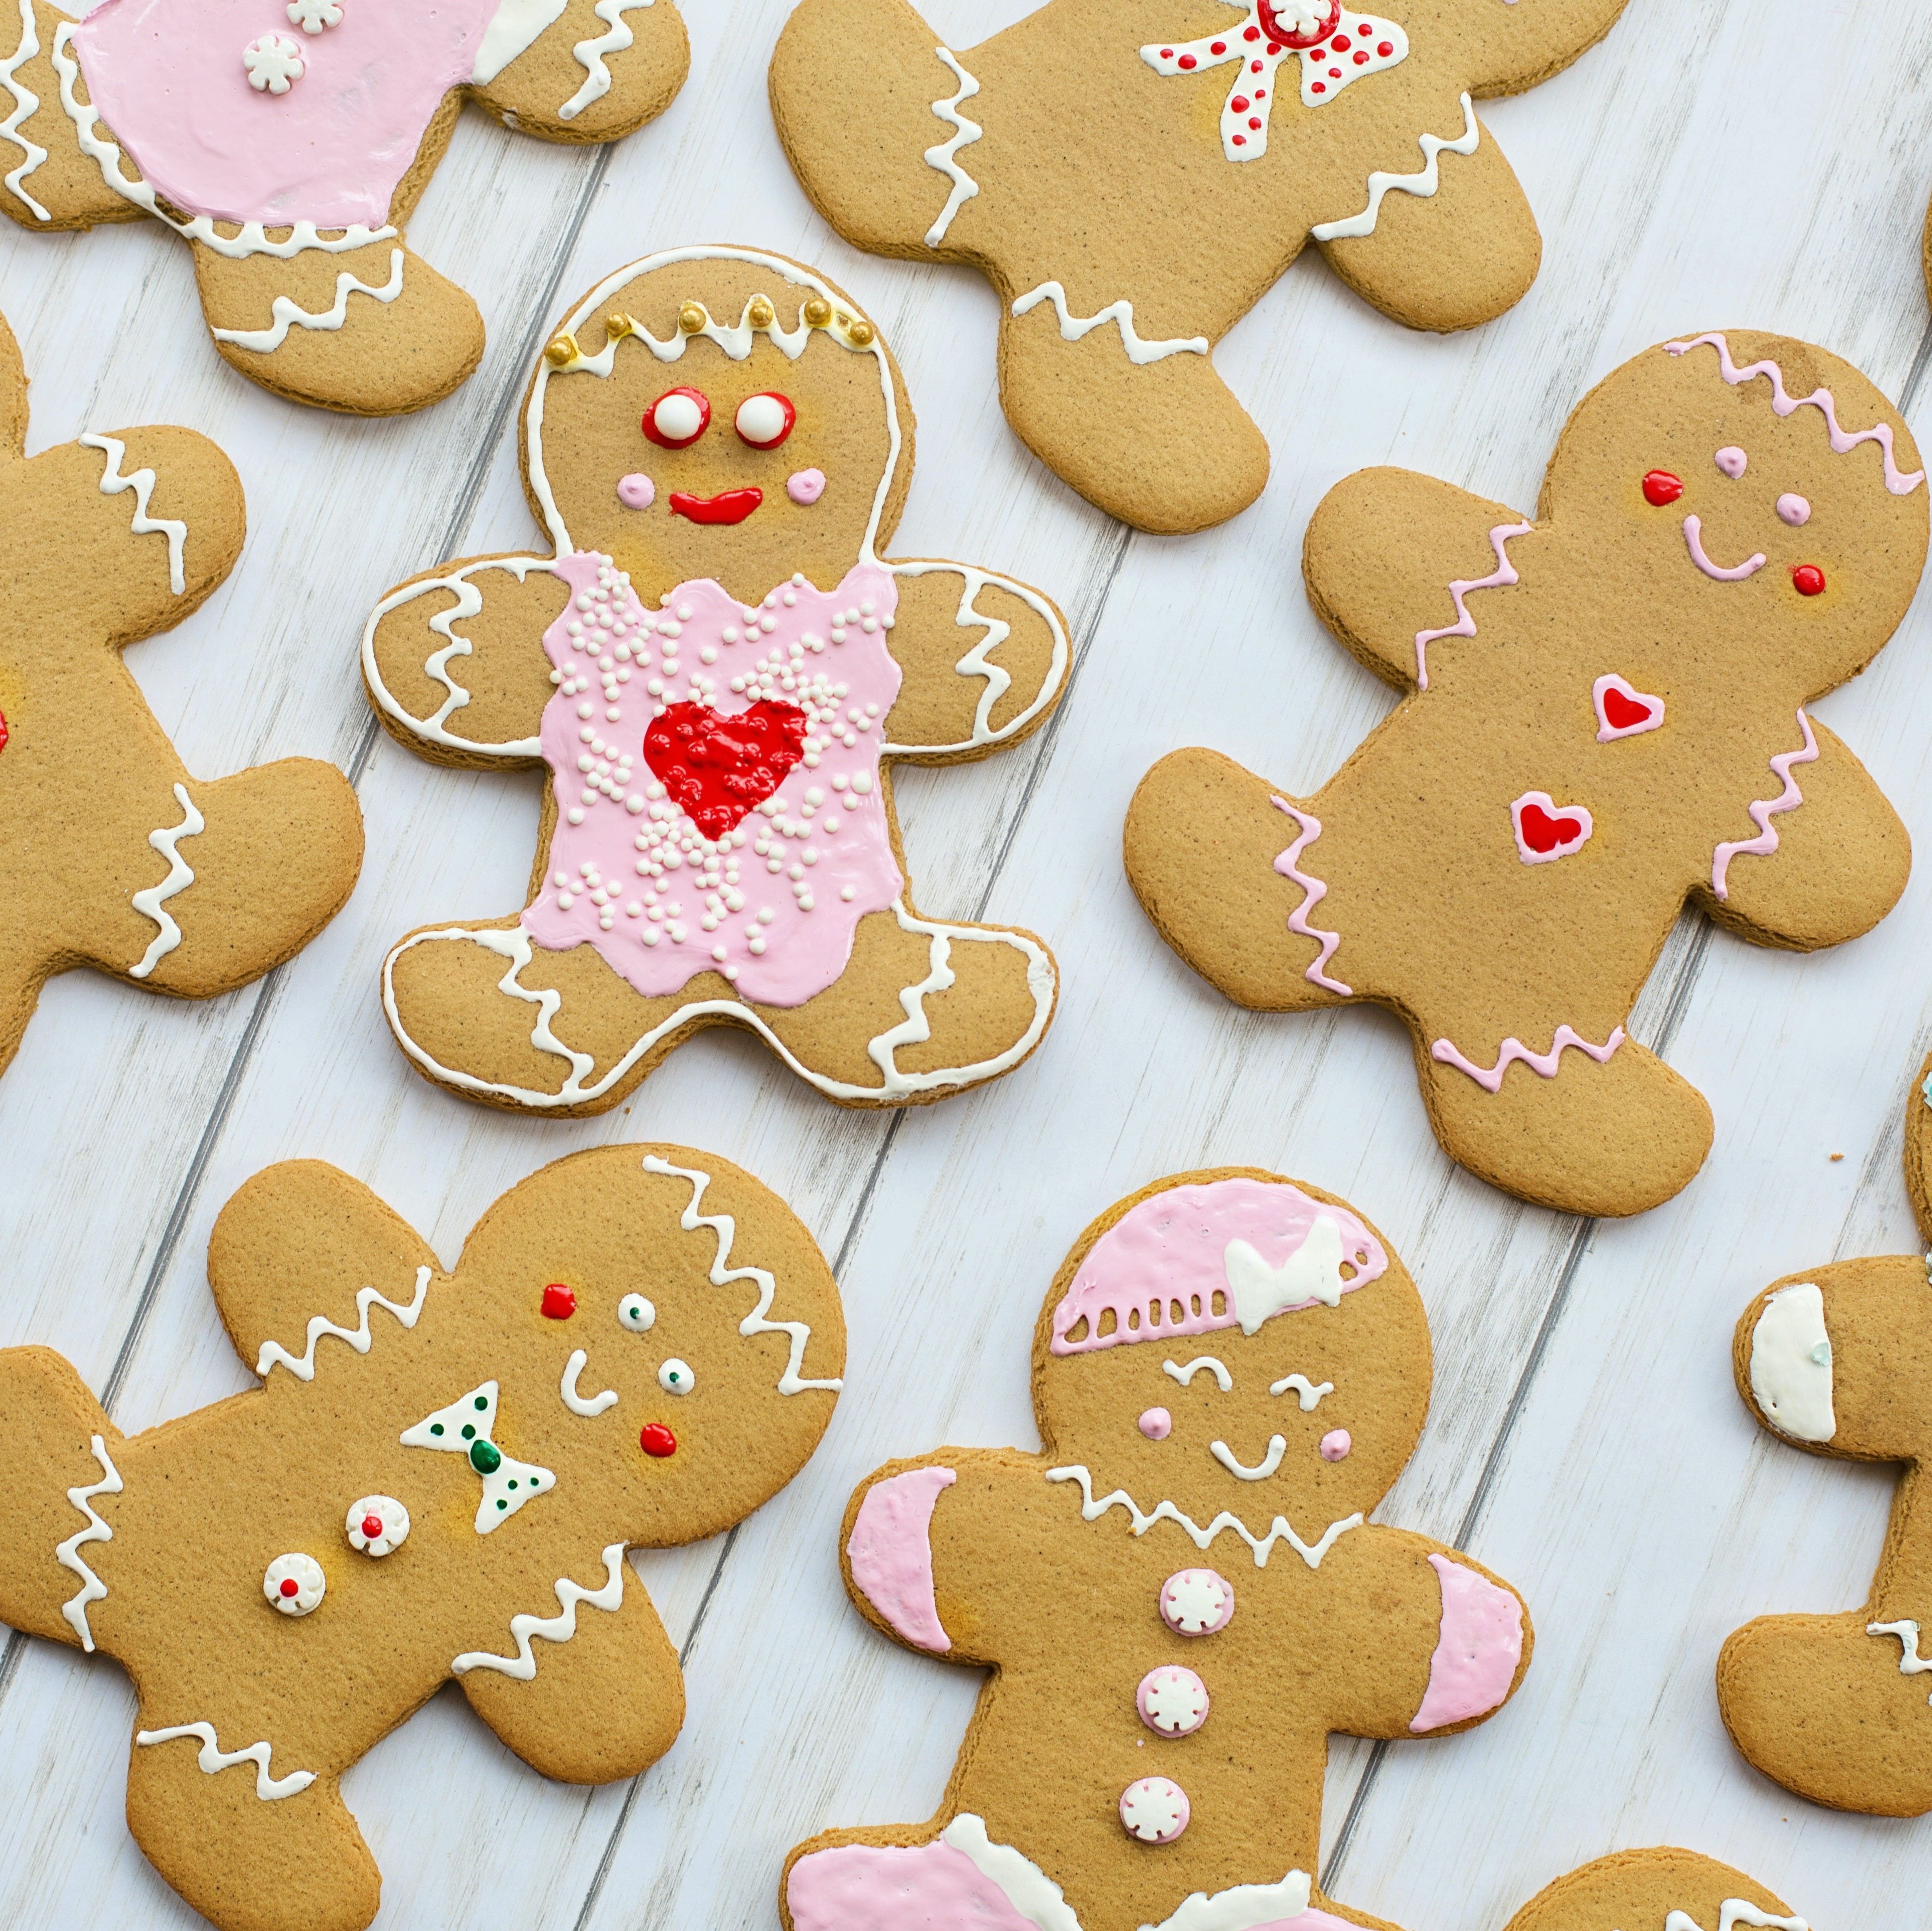 /blogue/top-view-of-gingerbread-cookies-laid-flat-on-a-wooden-table-3309805.jpg